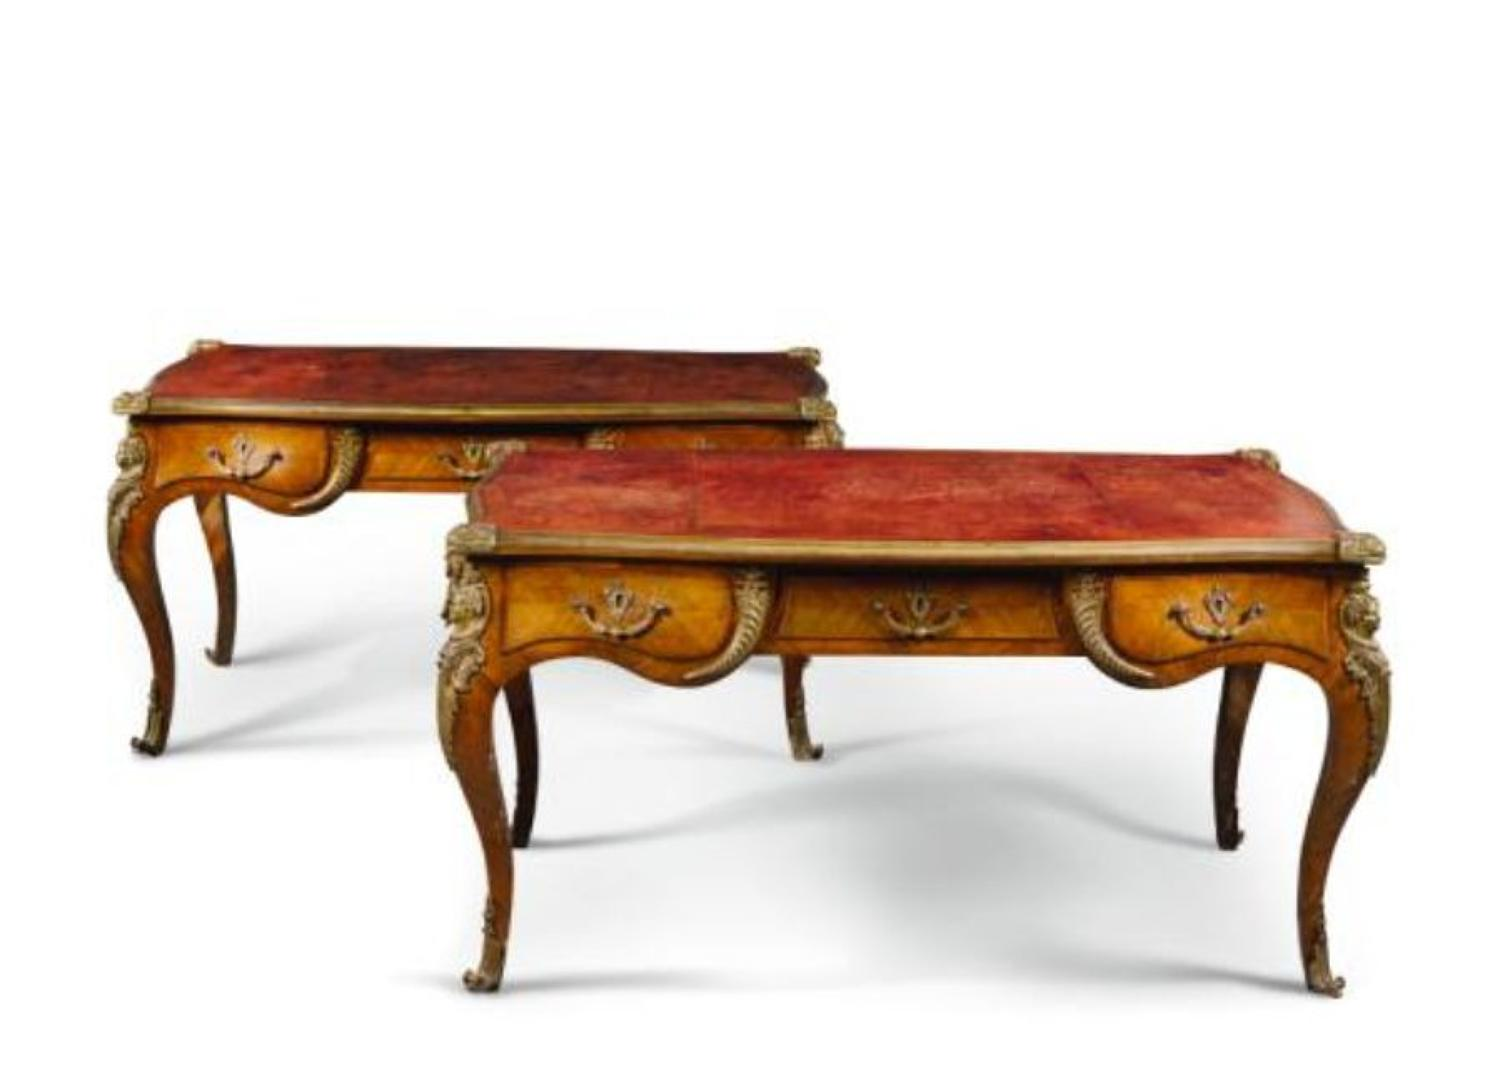 A superb pair of Louis XV stlye Bureau plats Late 19TH C